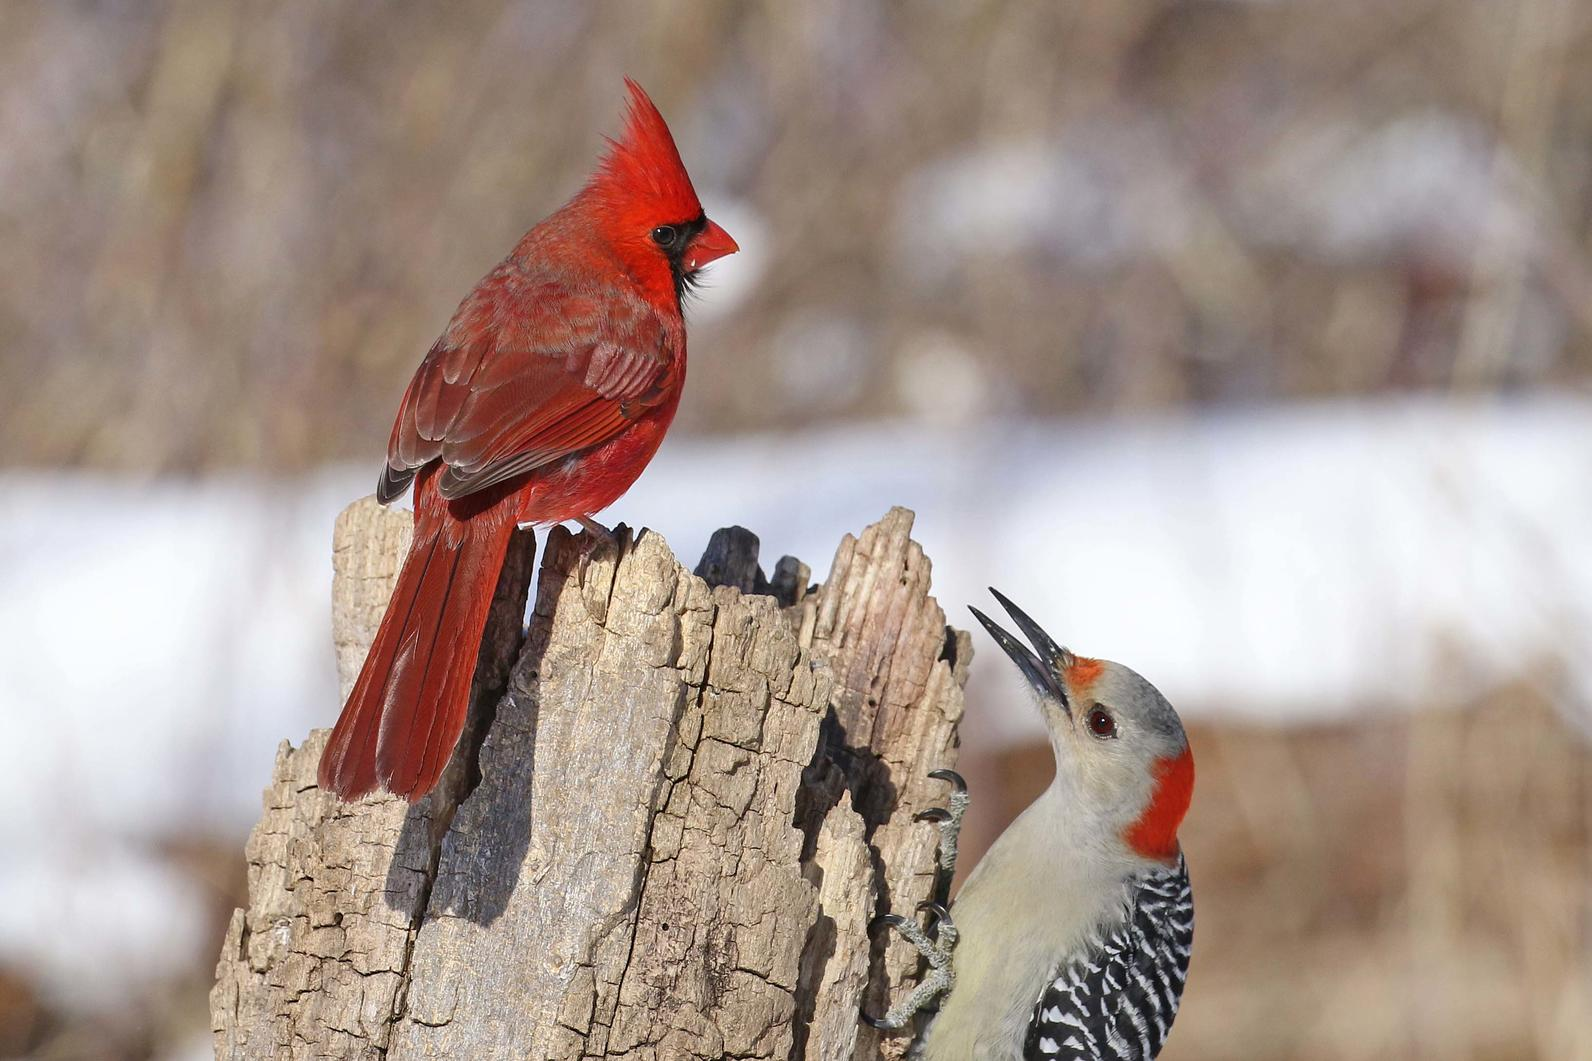 Northern Cardinal and Red-Bellied Woodpecker